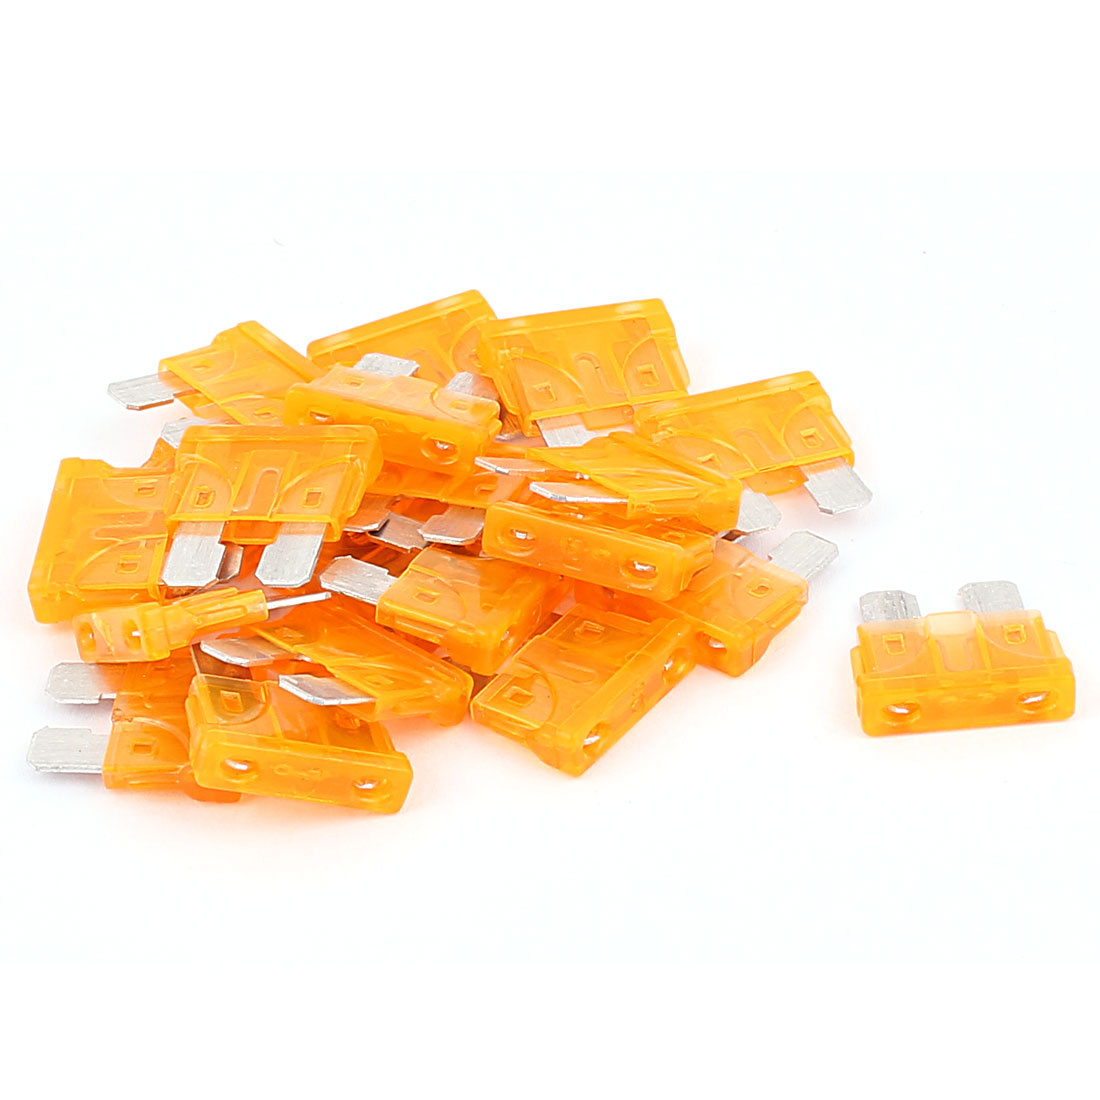 20pcs 5A Orange Plastic Housing Blade Fuse for Automotive Car Truck Motorcycle